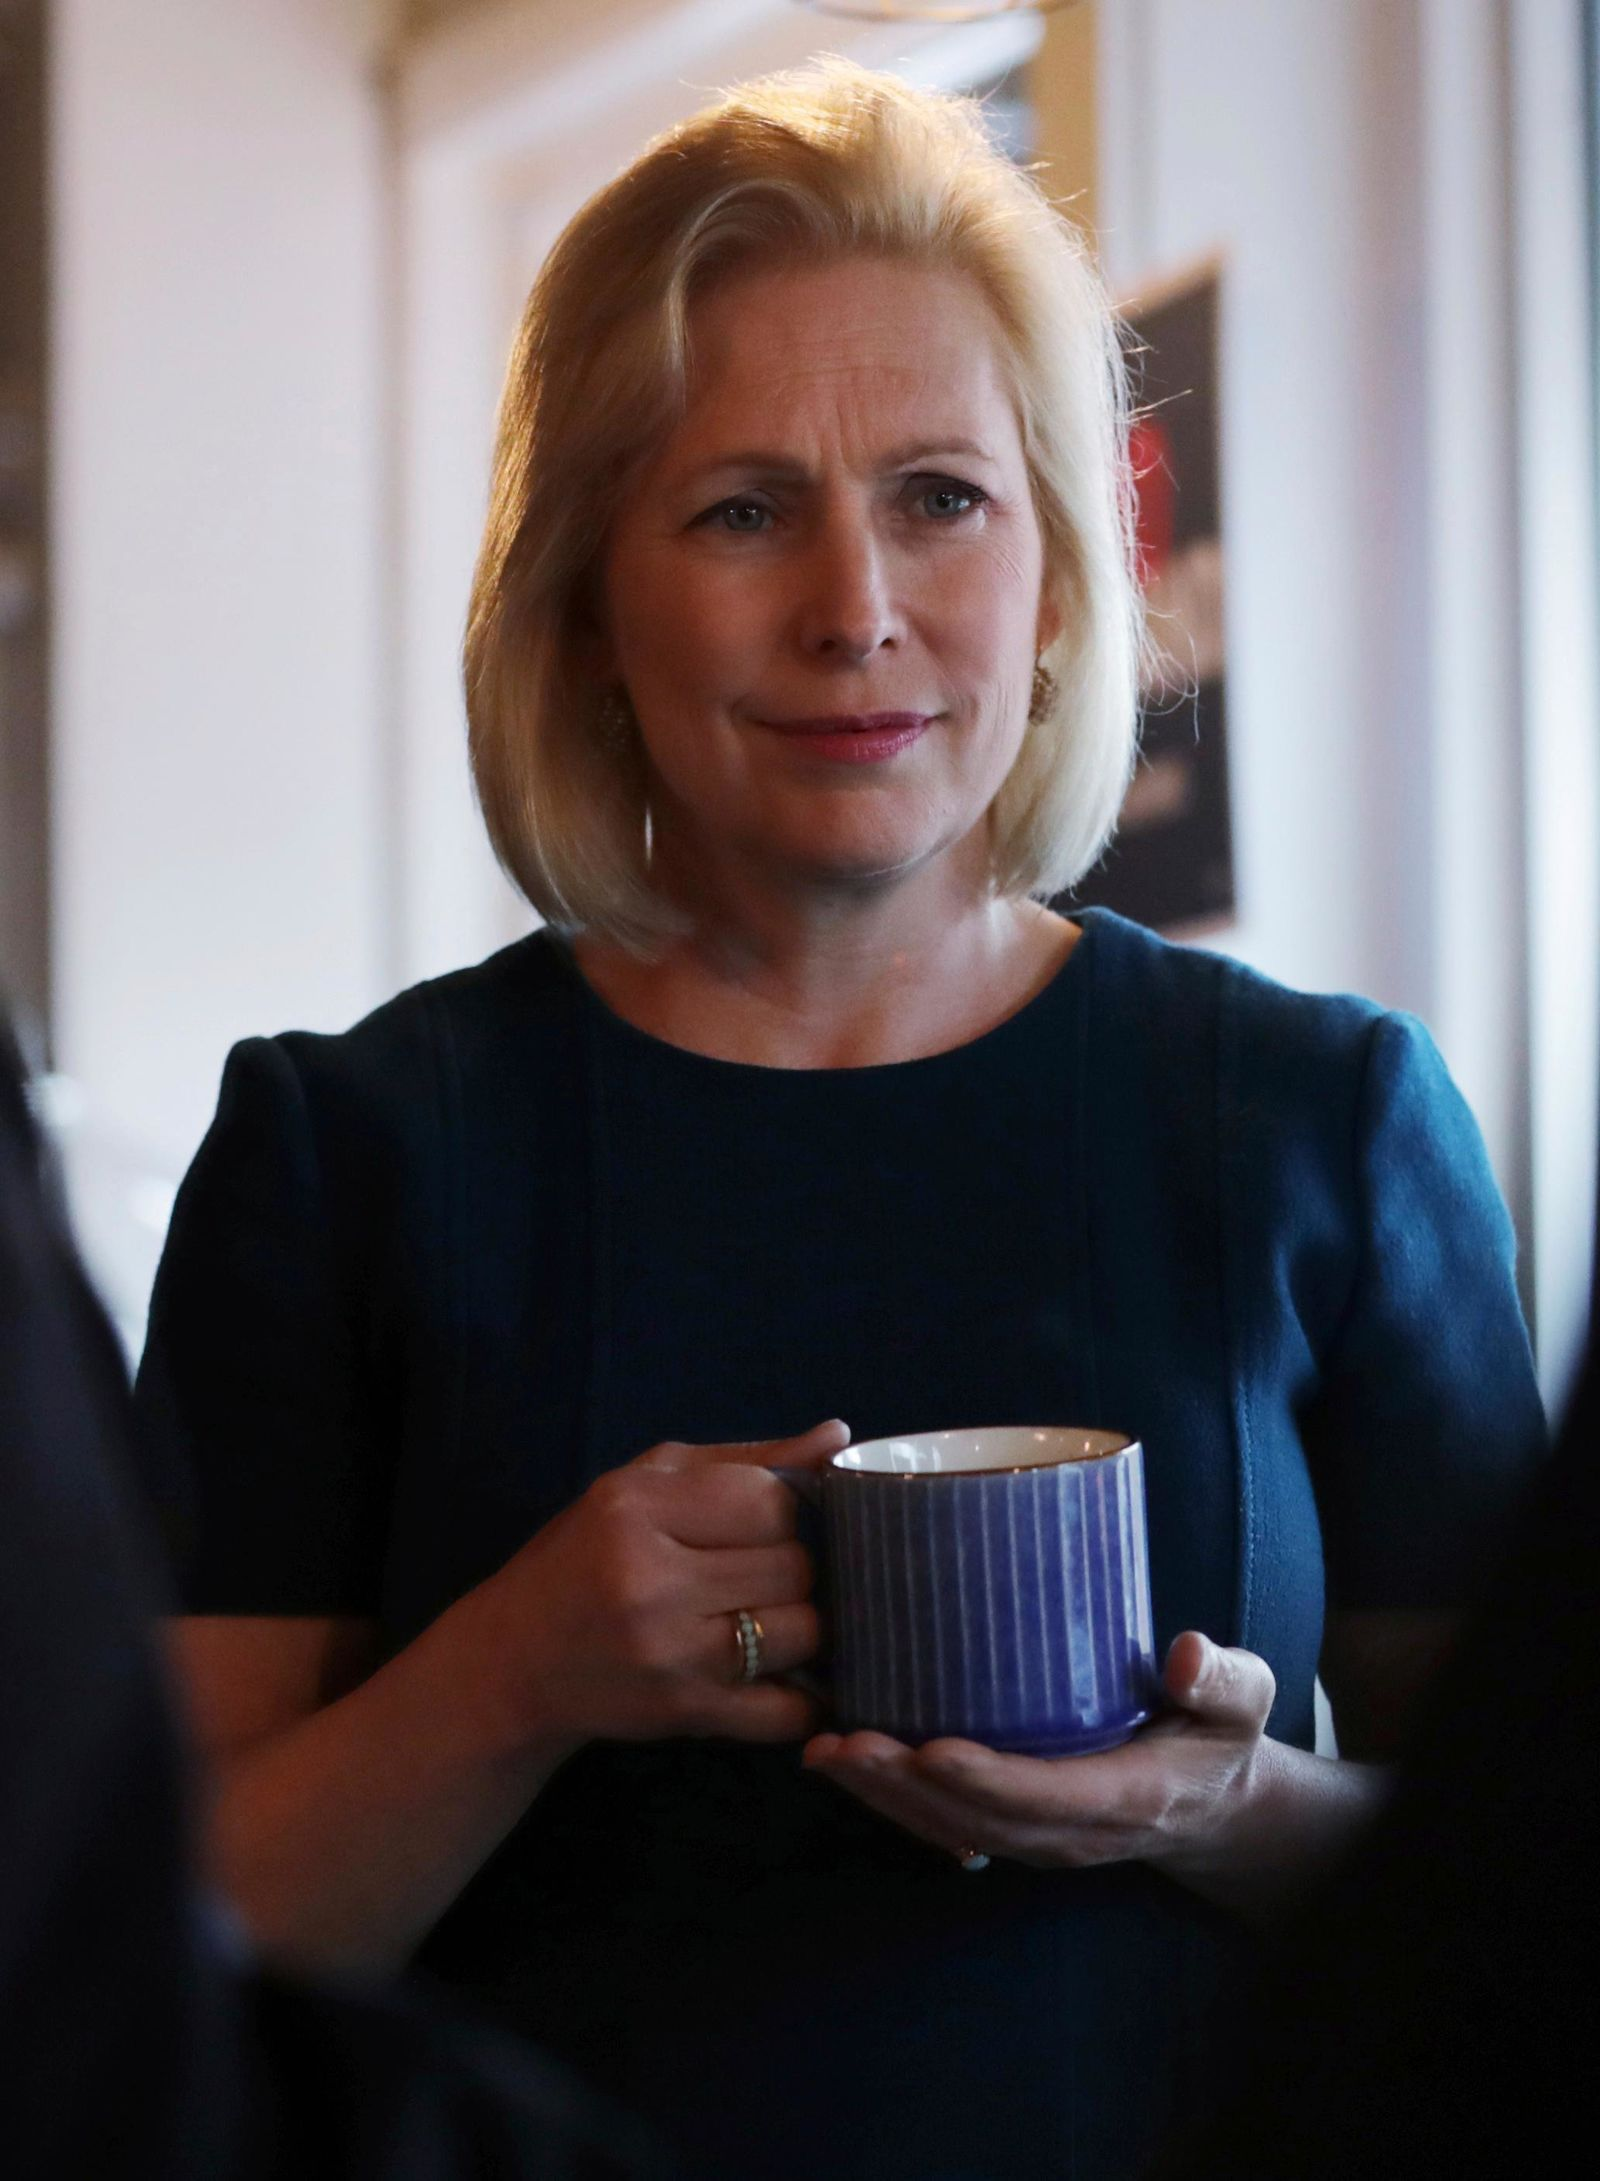 Democratic presidential candidate Sen. Kirsten Gillibrand, D-N.Y., listens to a question during a campaign stop at a coffee shop in Derry, N.H., Friday, May 10, 2019. (AP Photo/Charles Krupa)